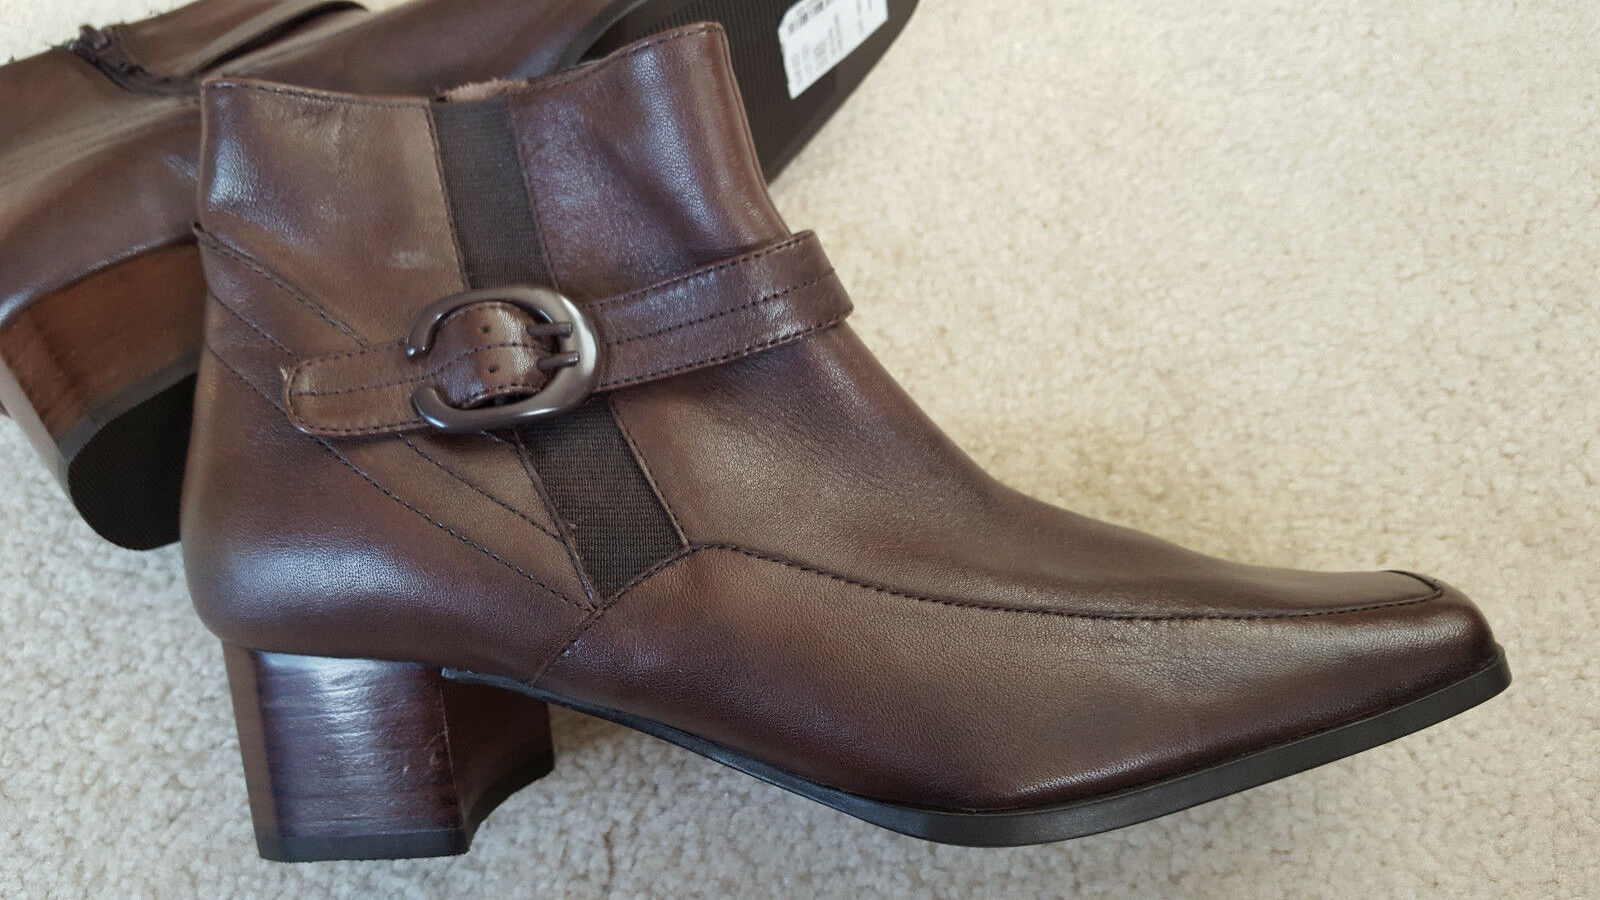 NEW Women's SJB Alana Dark Brown Leather Low Ankle Boot Size 6.5